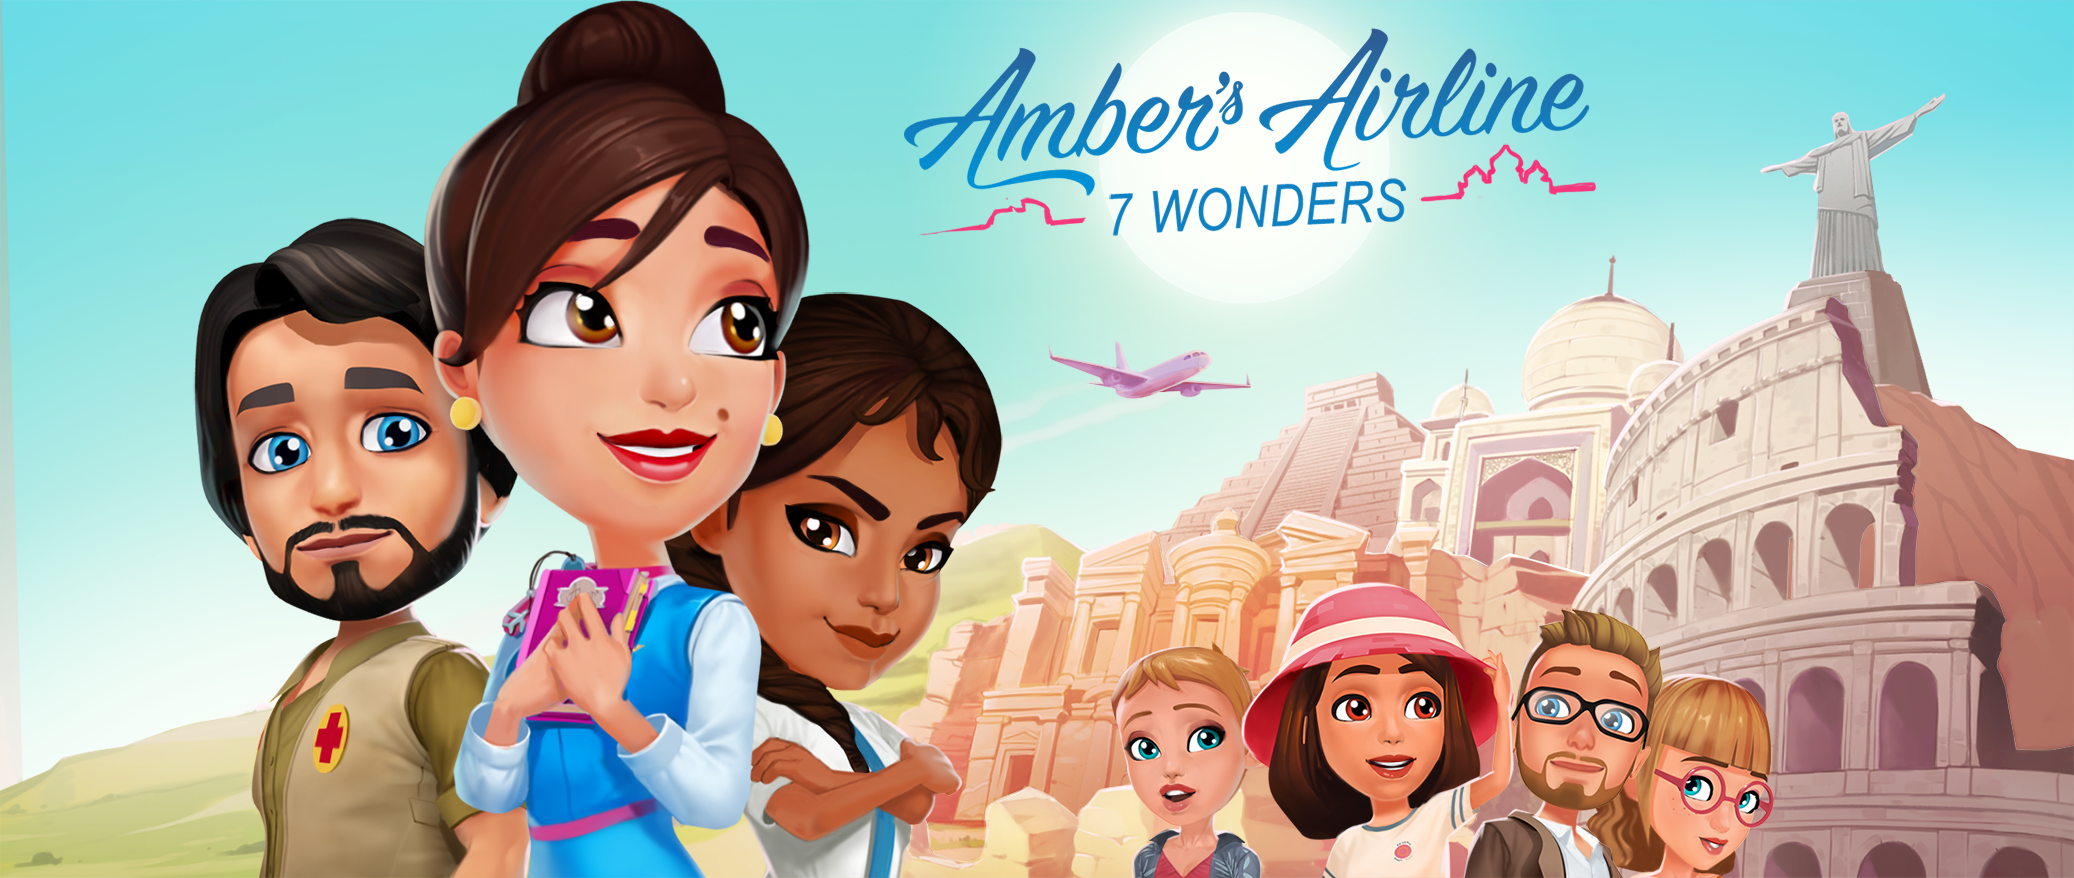 Amber's Airline : 7 Wonders - Have you always dreamed of travelling to the 7 New Wonders of the World? Now you can! Join Amber and the girls as they fly around the world!